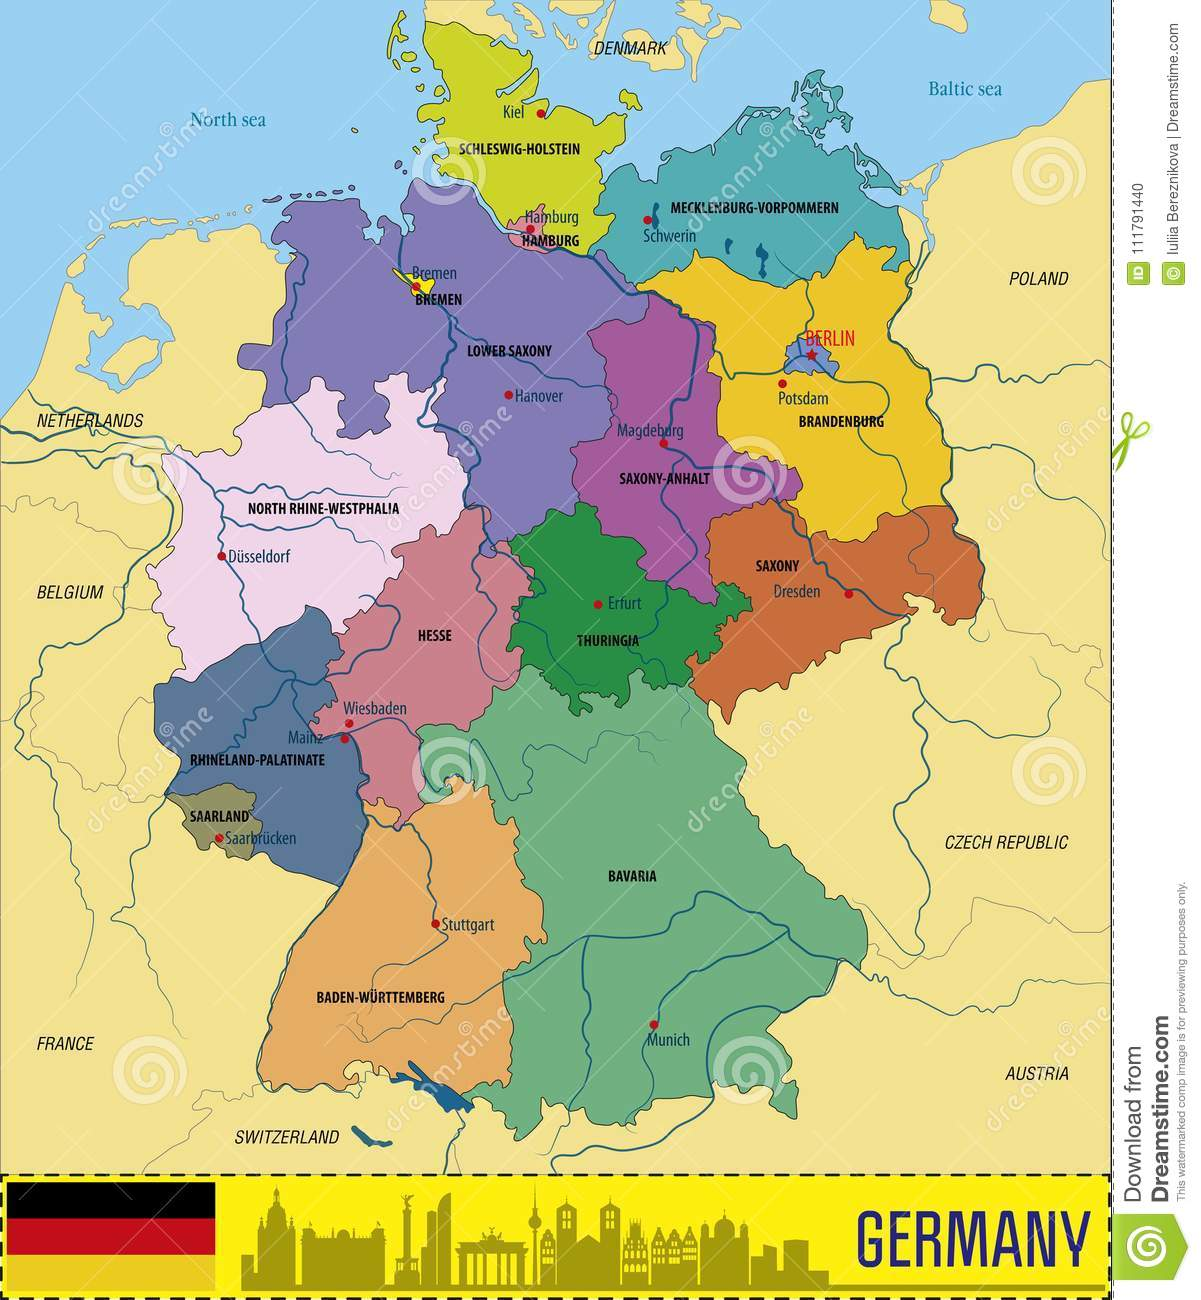 Map Of Germany With Regions.Germany Vector Map With Regions Stock Vector Illustration Of